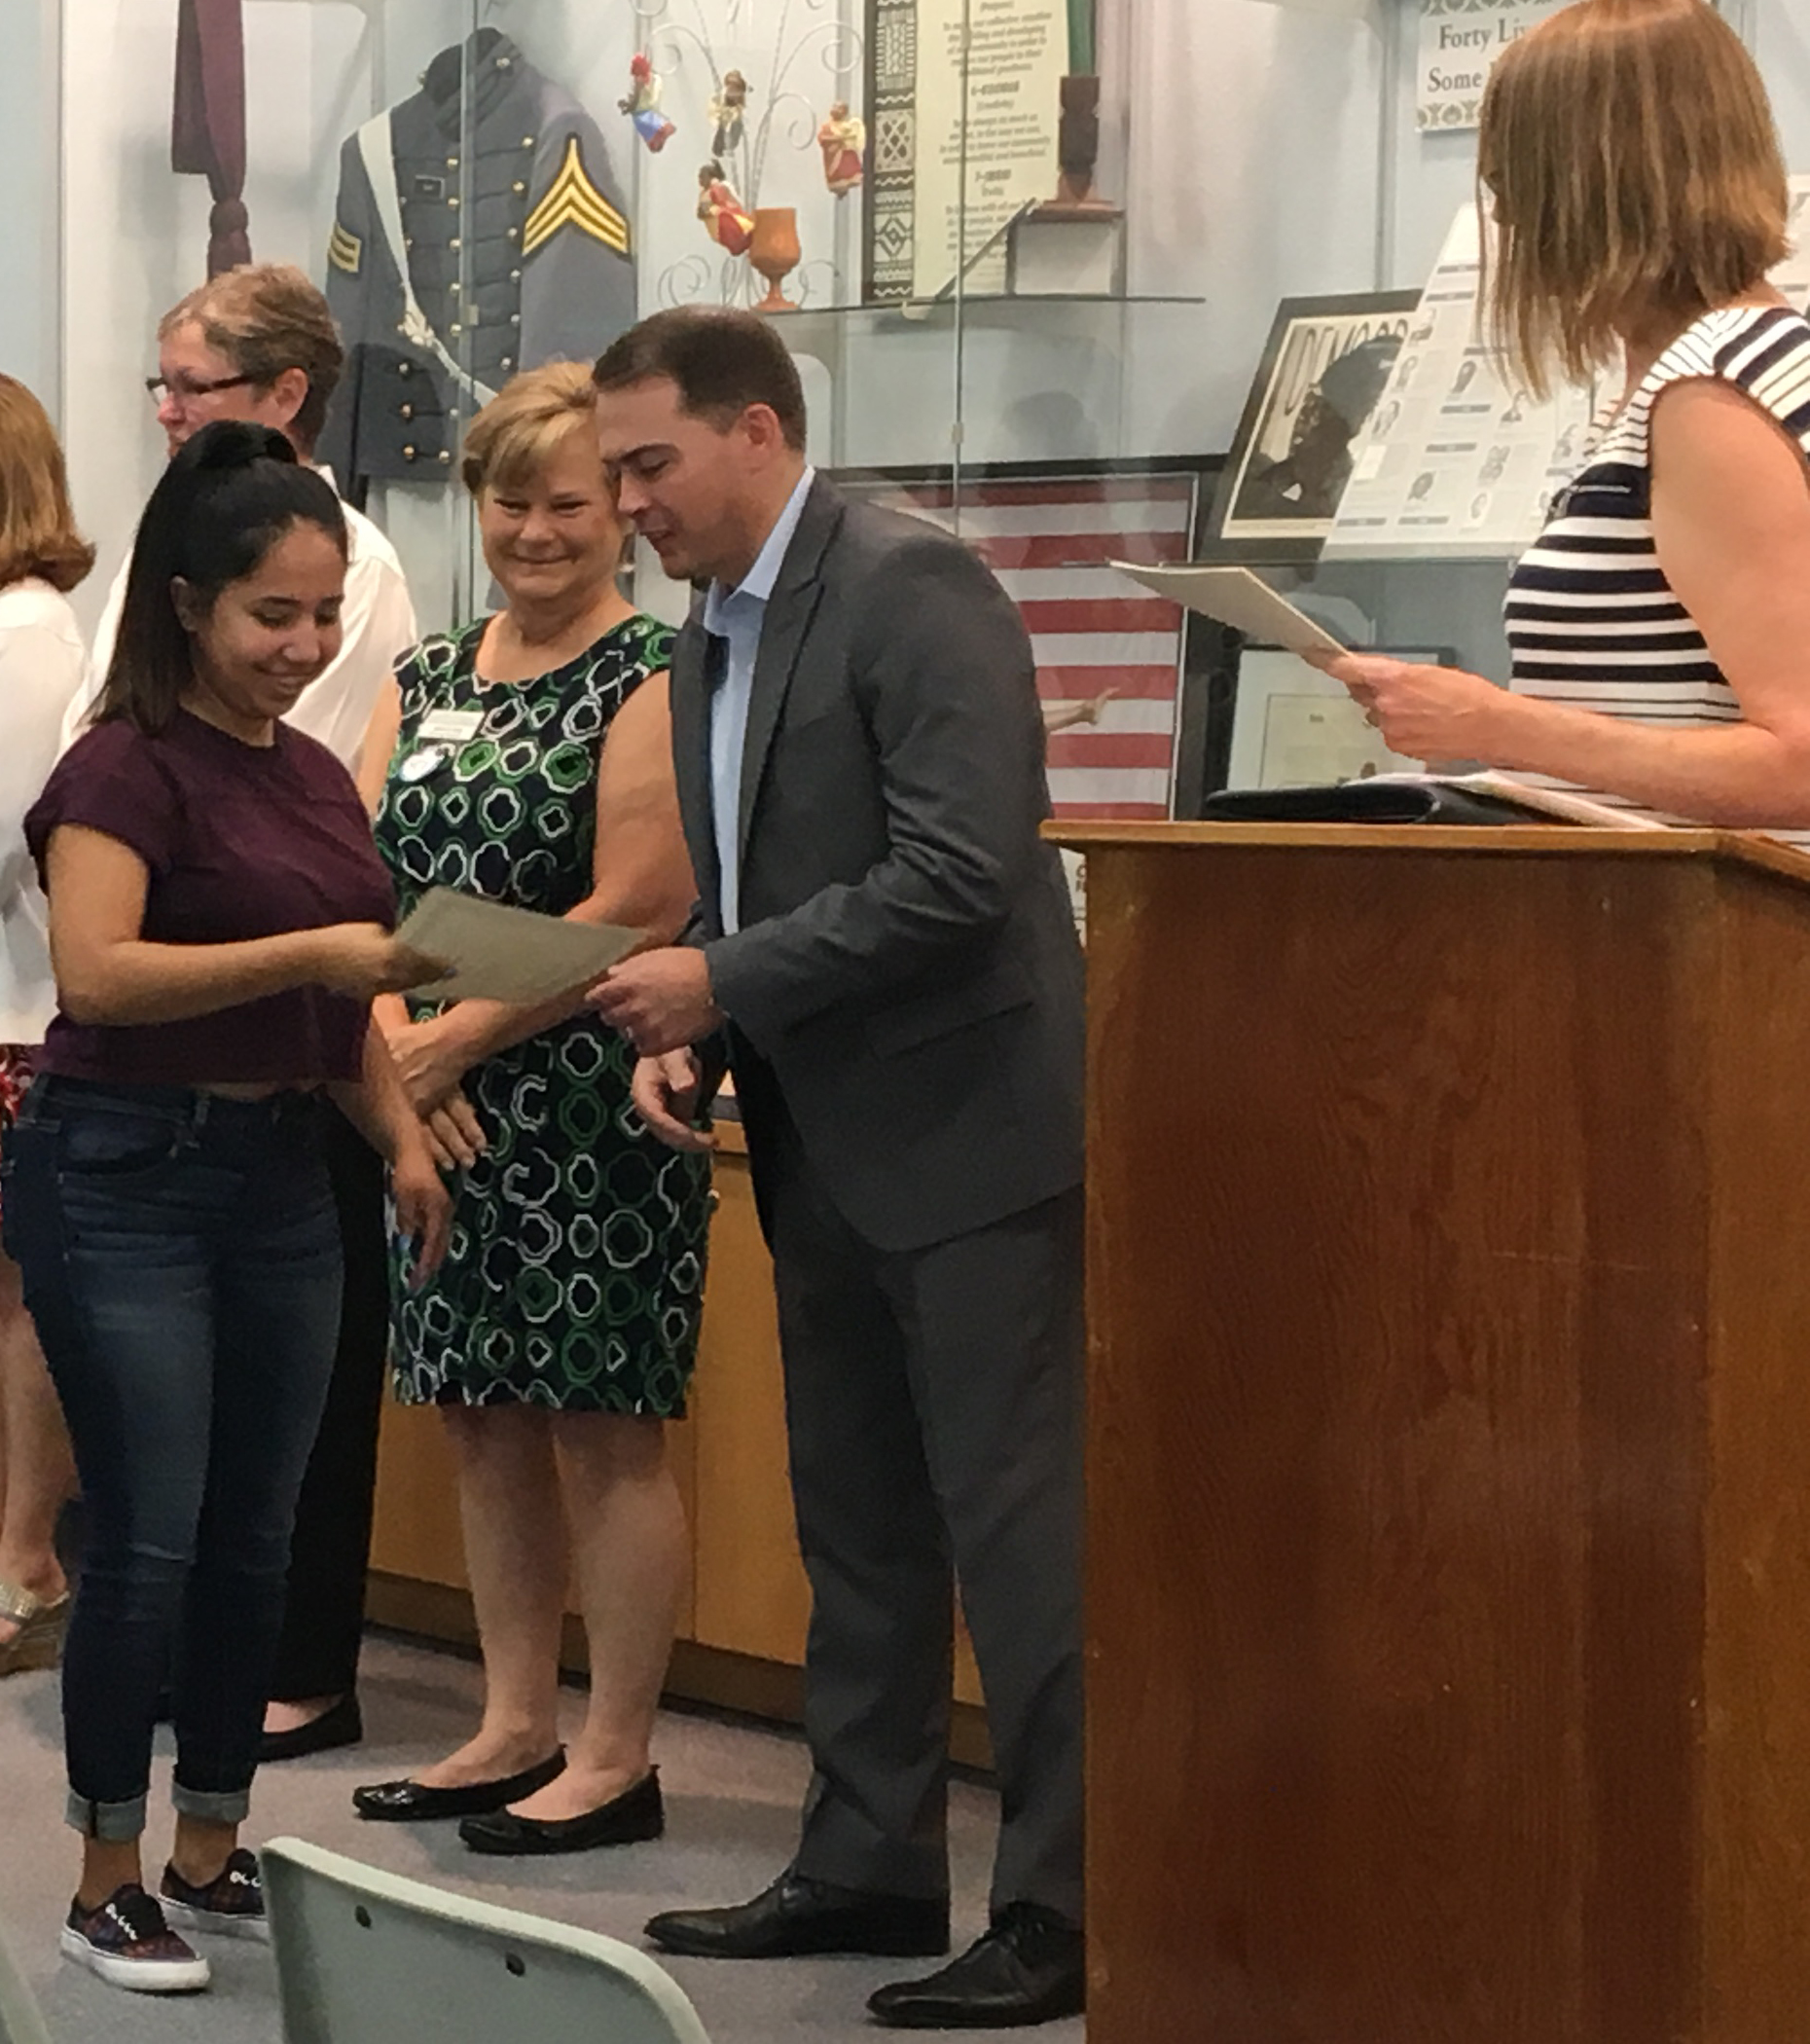 Kimberly Jaimes-Diaz receives her certificate.